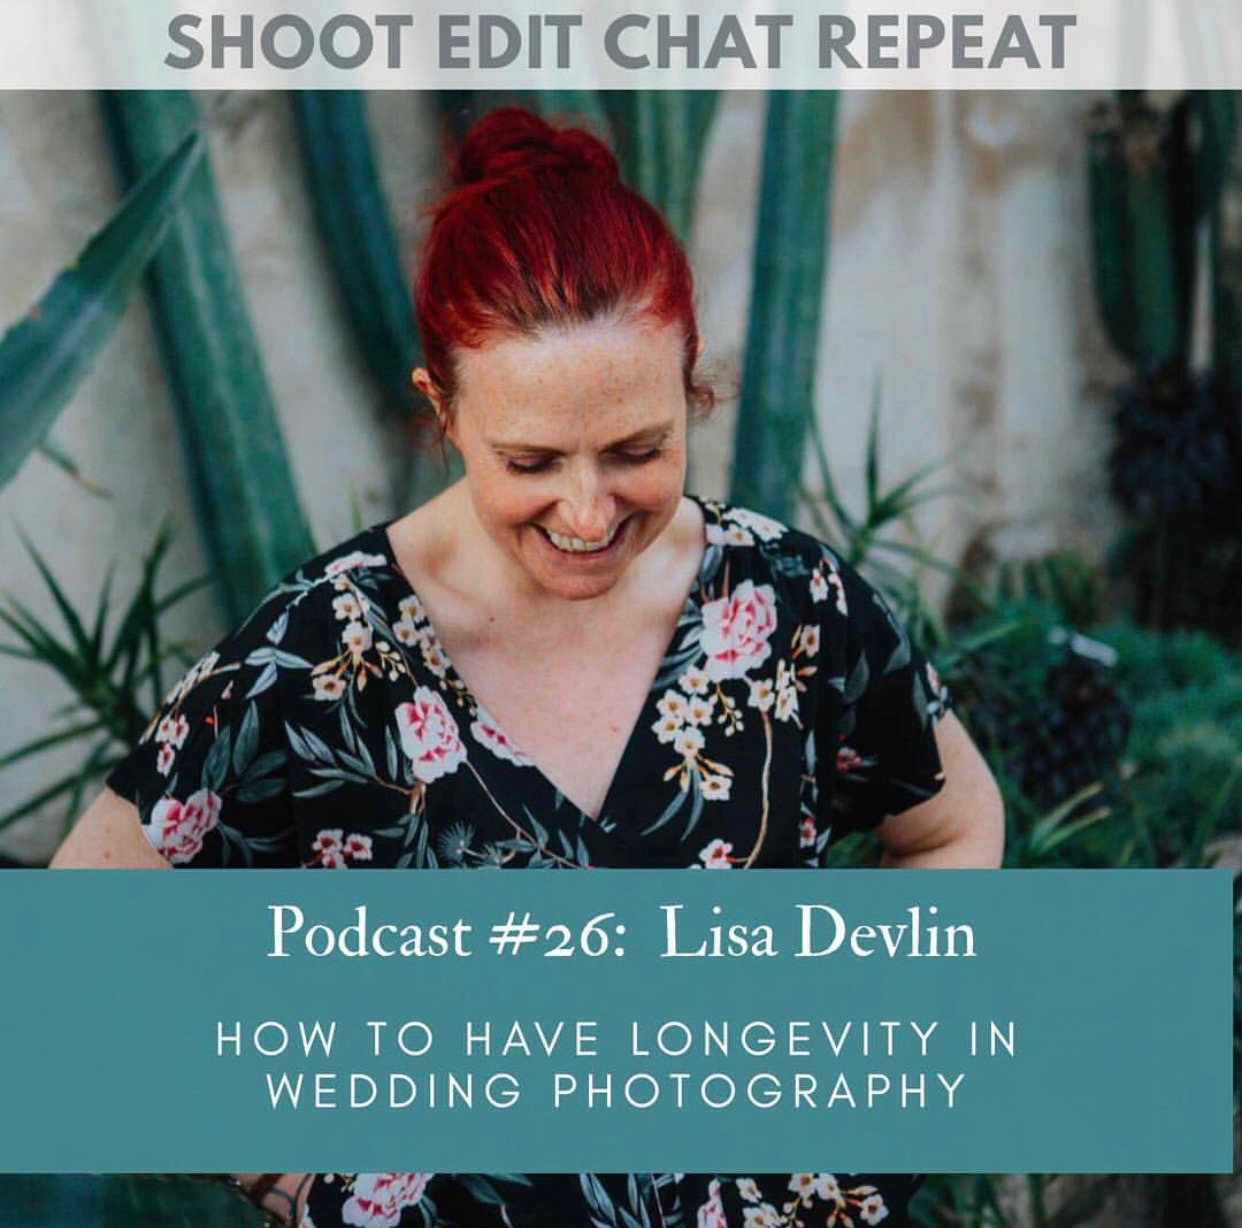 #26  Lisa Devlin: How to have longevity in wedding photography